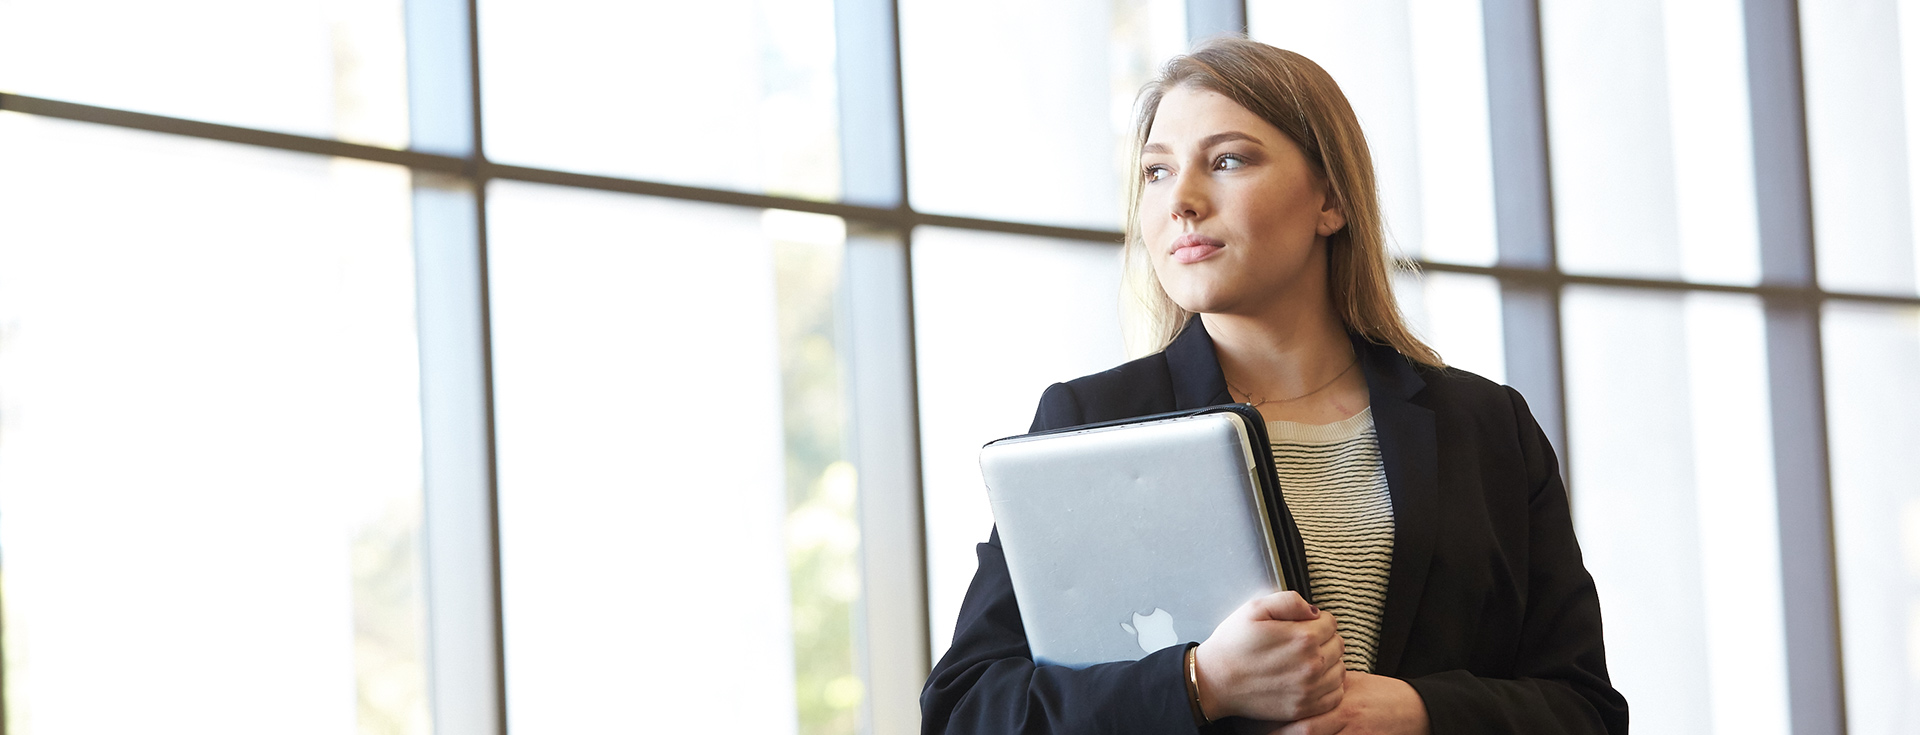 Image of woman with laptop